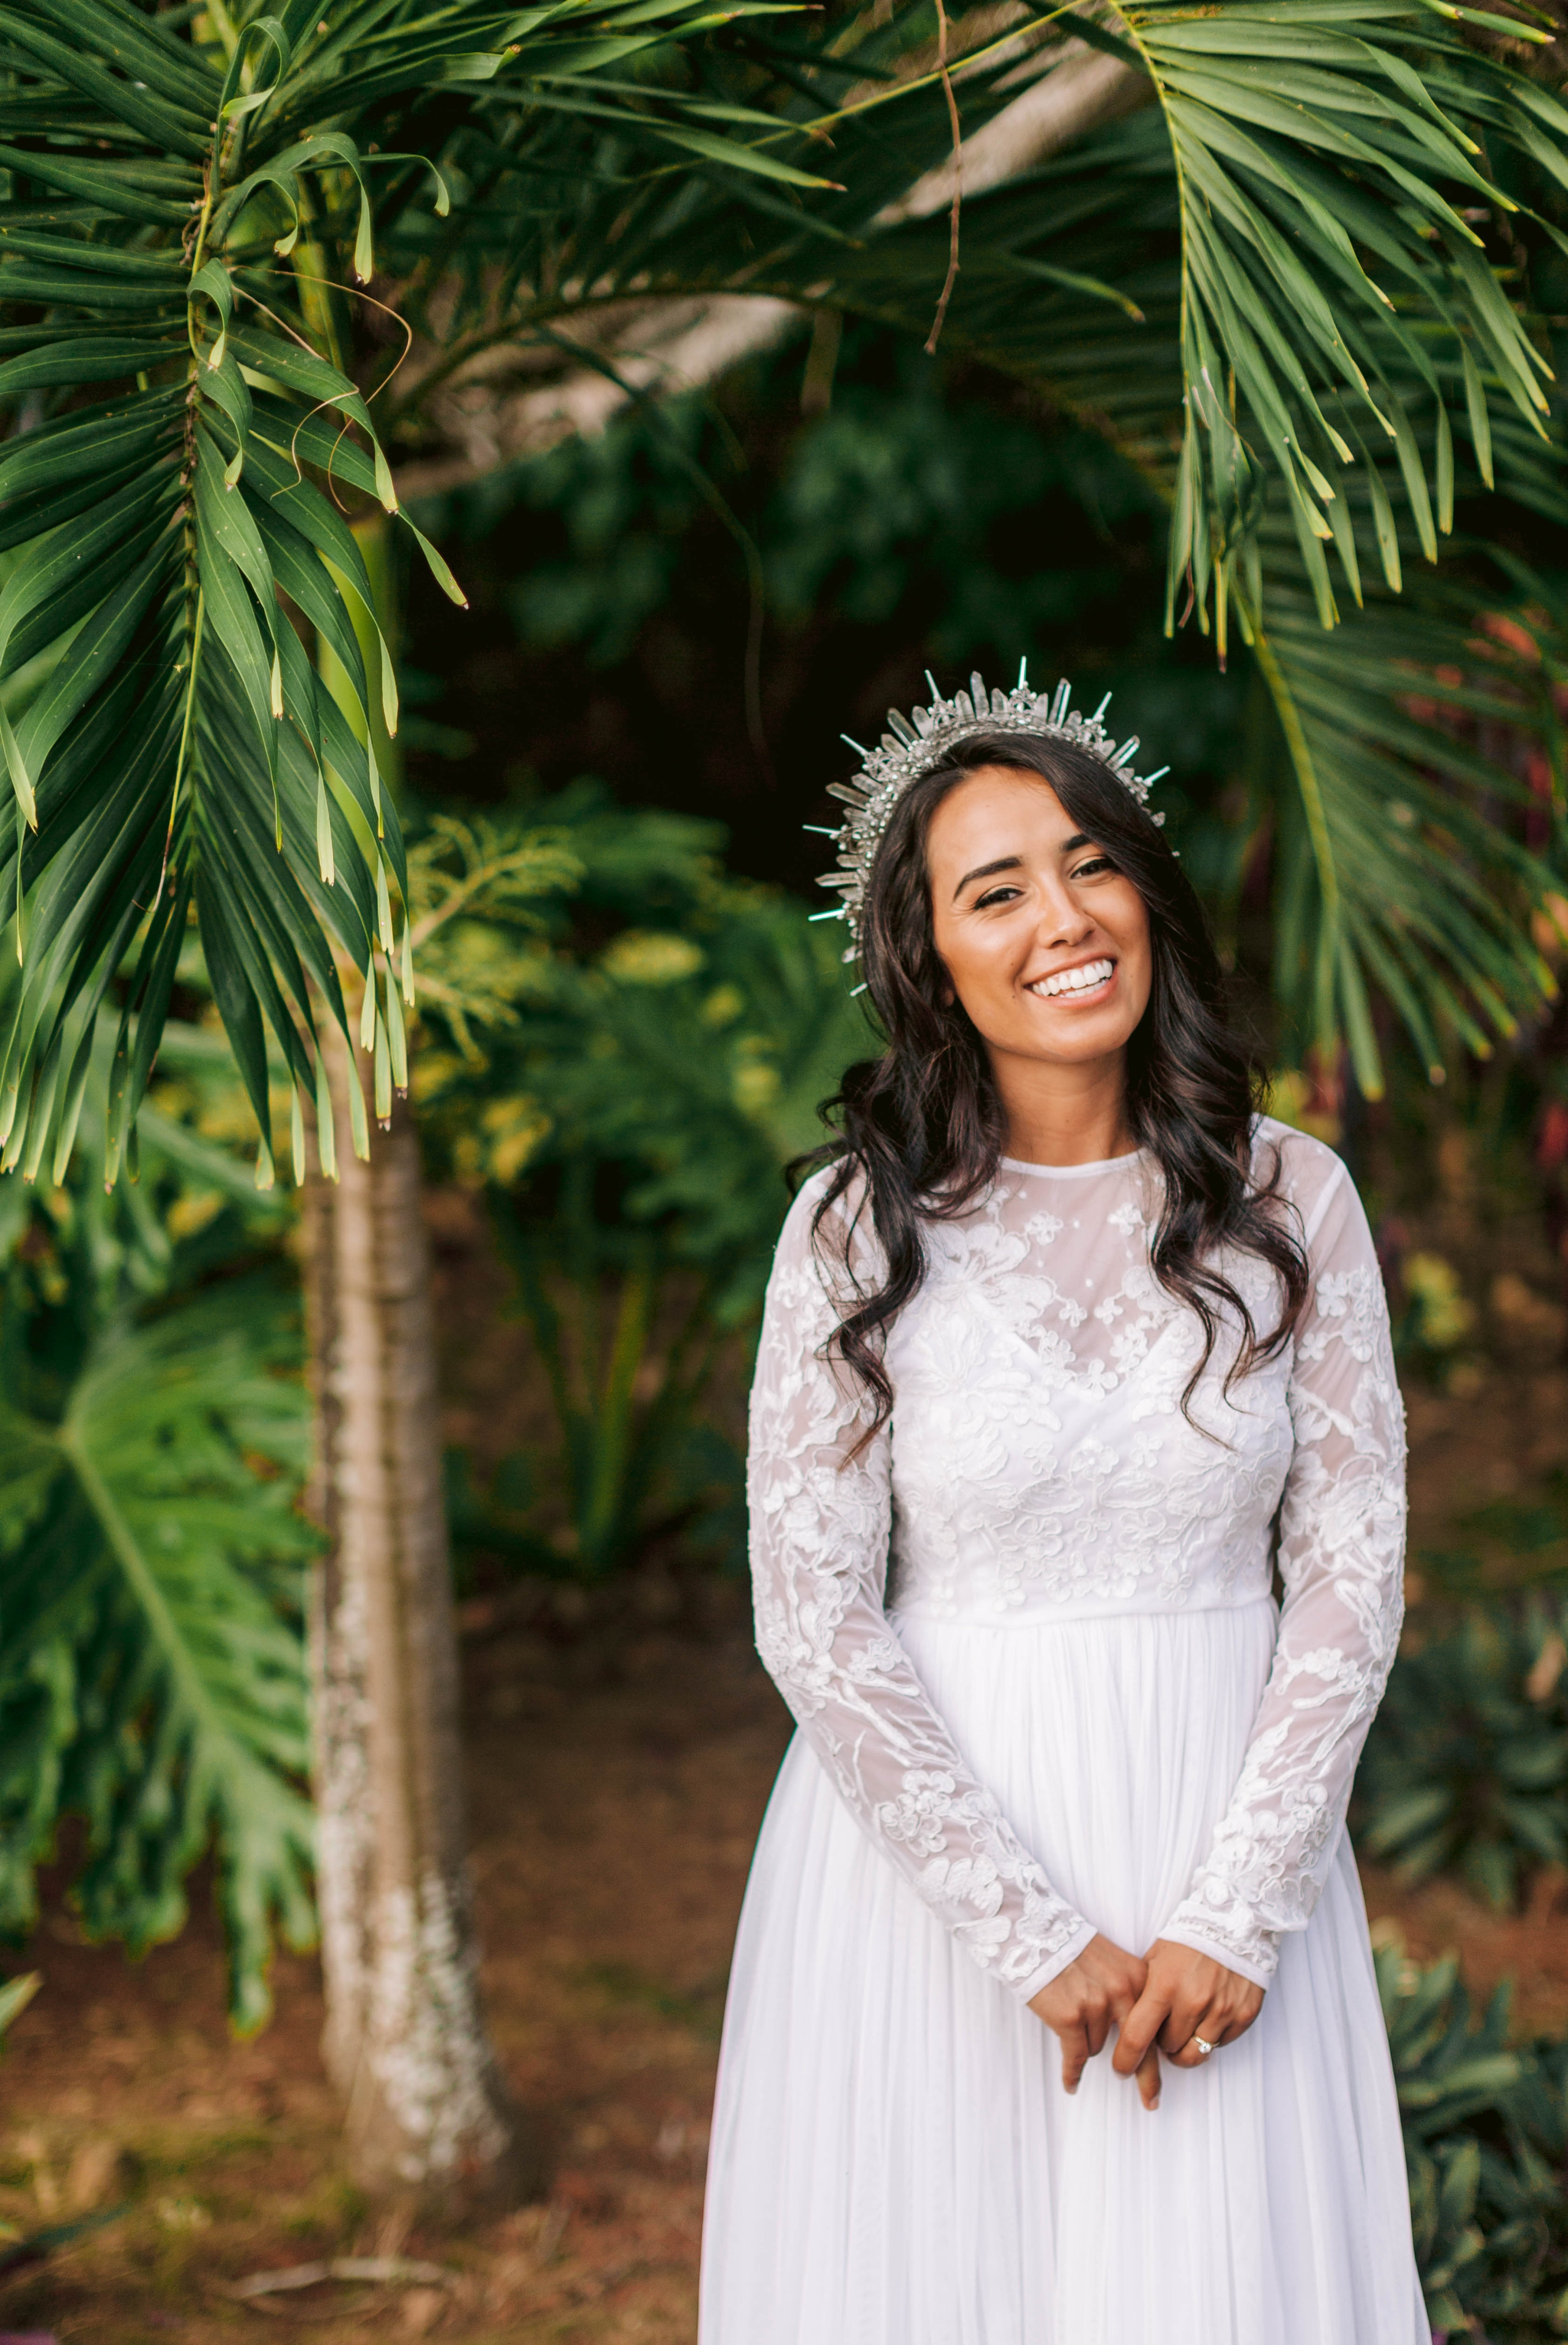 Tropical Bridal Portraits - Bride is wearing a wedding dress by asos and a unique crown under palm trees - Ana + Elijah - Wedding at Loulu Palm in Haleiwa, HI - Oahu Hawaii Wedding Photographer